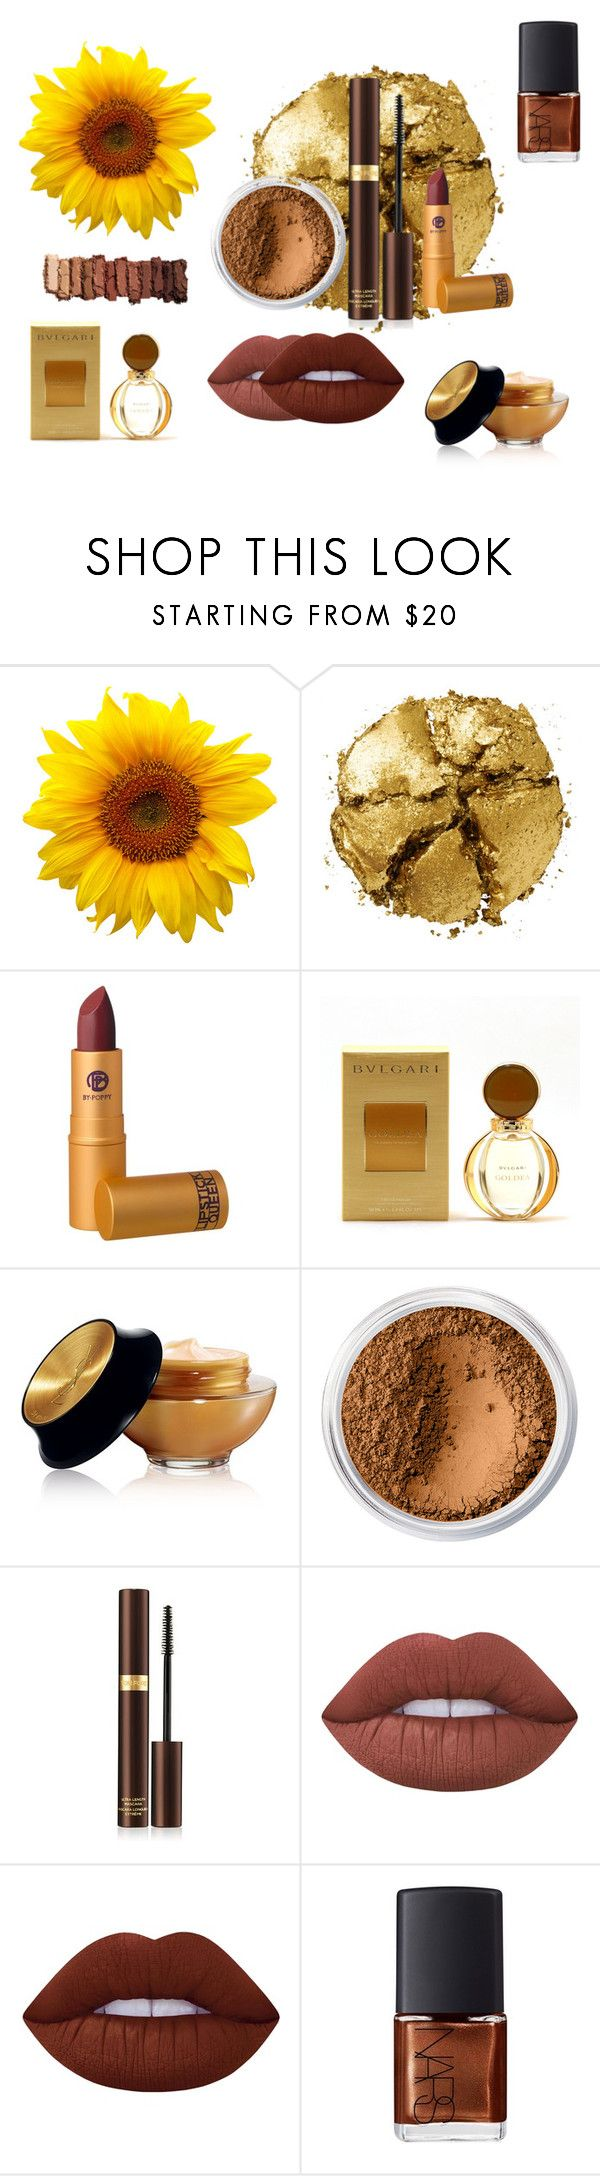 """""""Organic natural makeup"""" by elfafungian on Polyvore featuring beauty, Pat McGrath, Lipstick Queen, Bulgari, Yves Saint Laurent, Bare Escentuals, Tom Ford, Lime Crime, NARS Cosmetics and Urban Decay"""